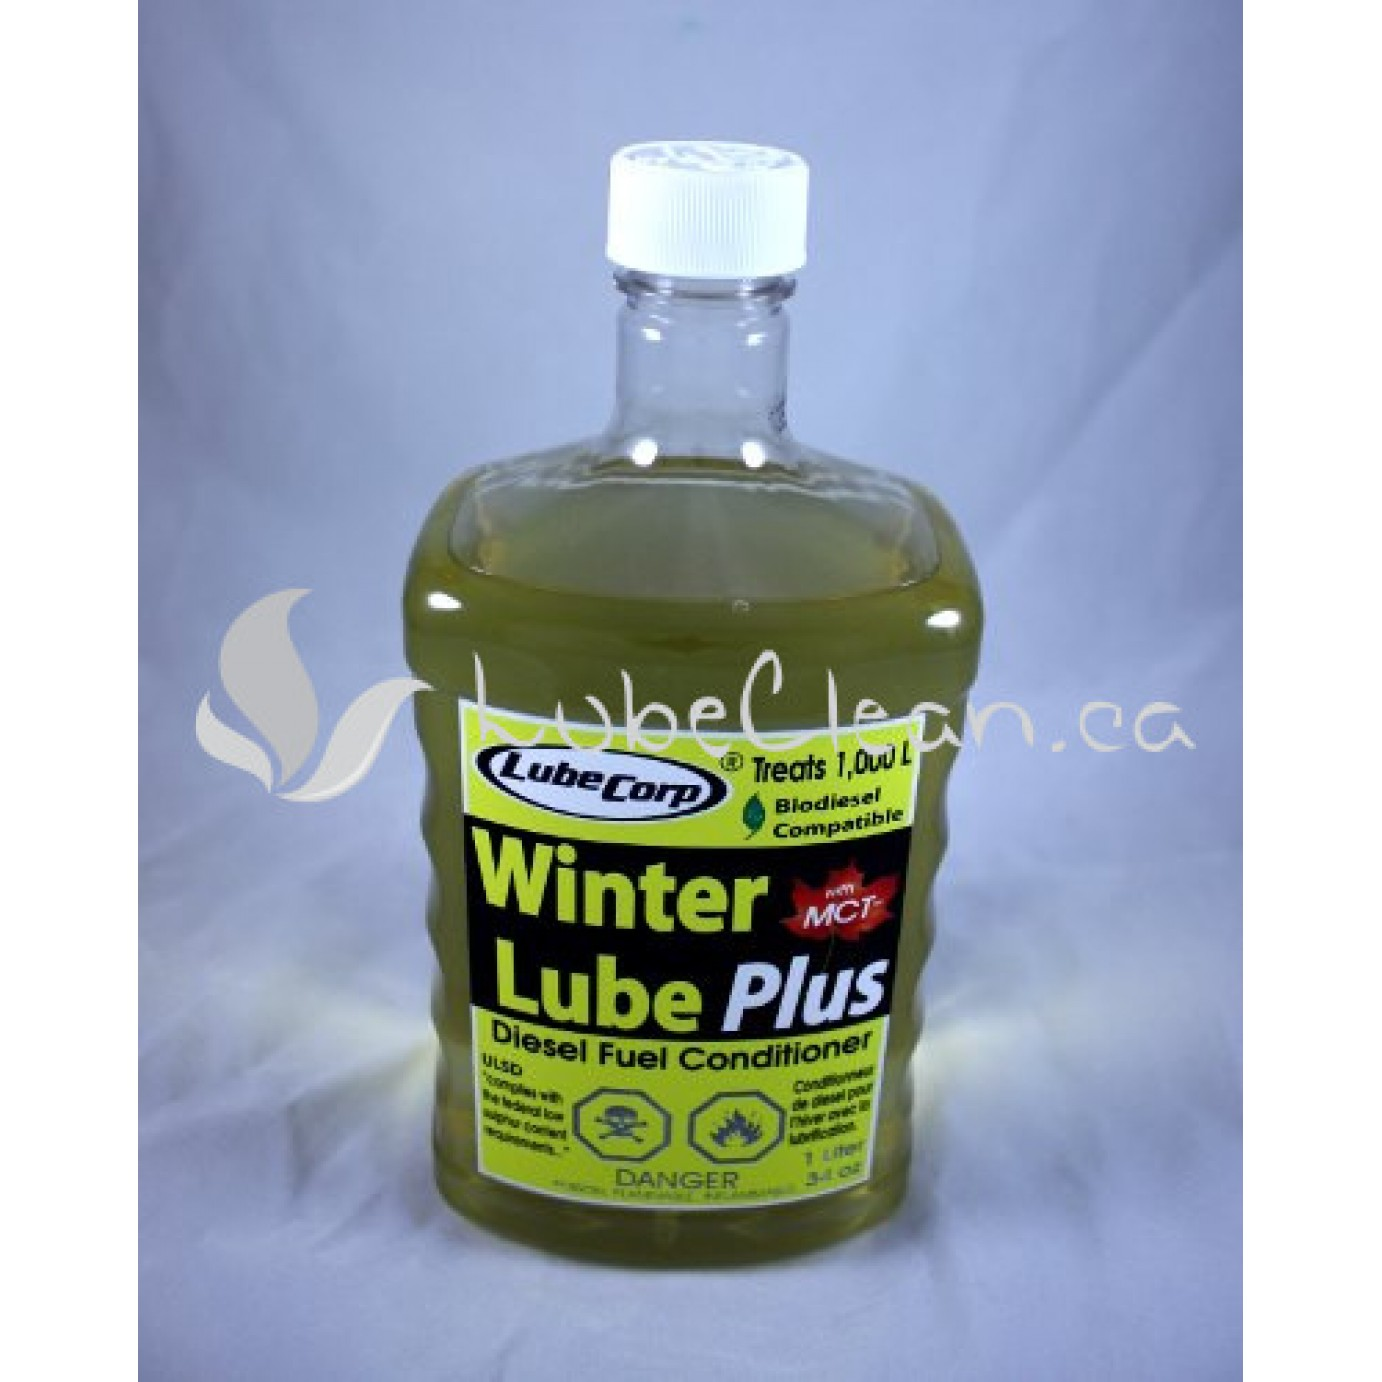 Winter Lube Plus Diesel Conditioner 1 L bottle